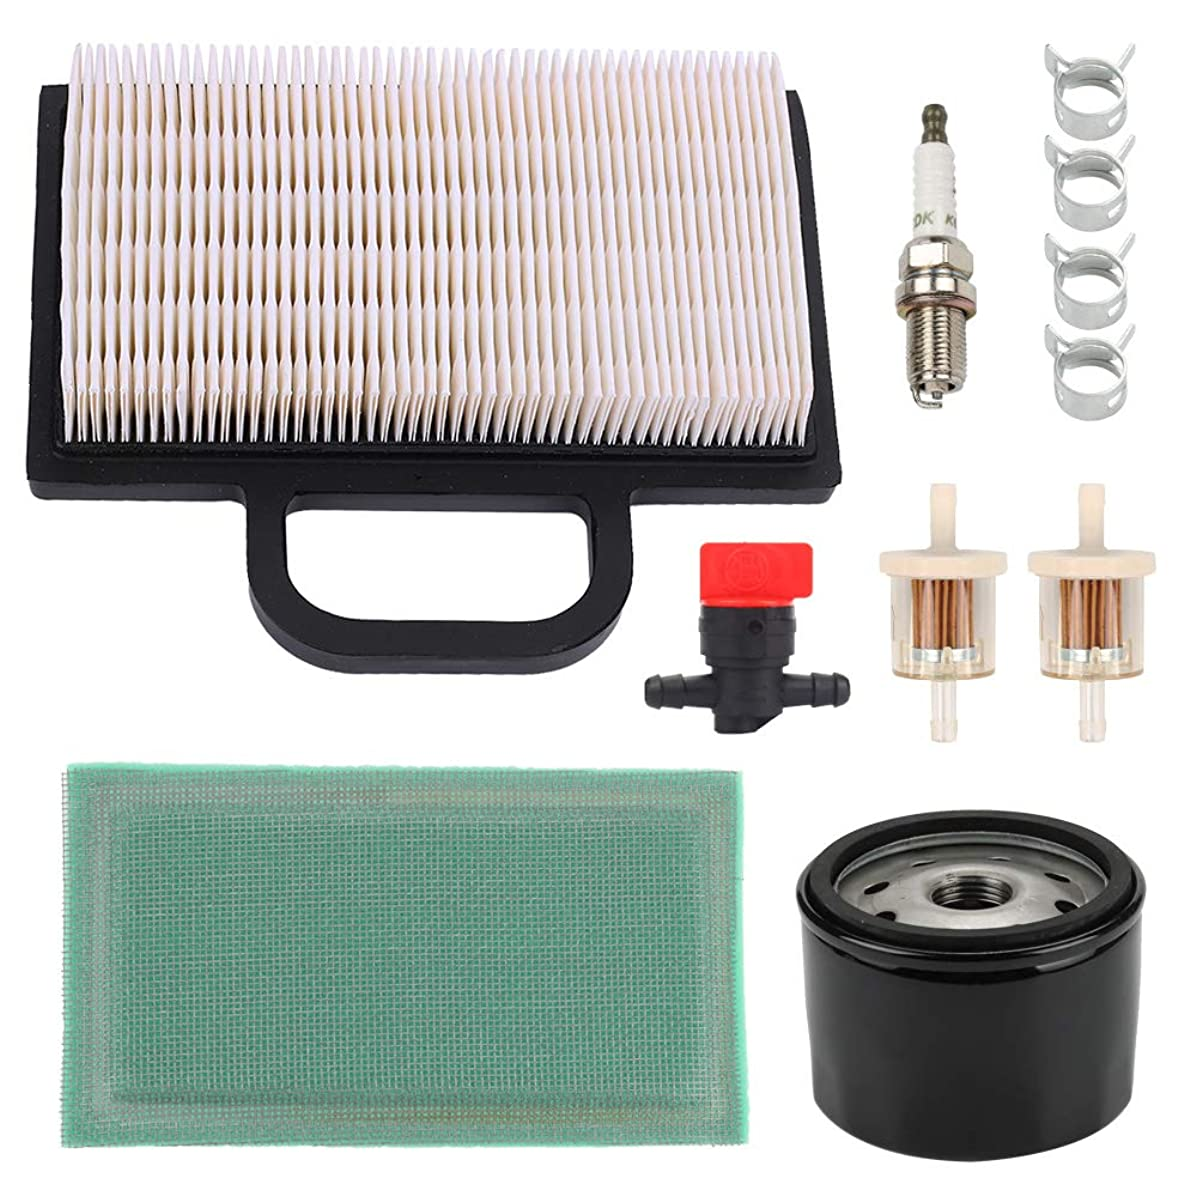 Hayskill 698754 499486S 273638 Air Filter 691035 Fuel Filter for Briggs & Stratton 18-26 HP Intek V-Twin Engine John Deere L120 L111 L118 LA120 LA130 LA140 D130 D140 Lawn Mower Tractor